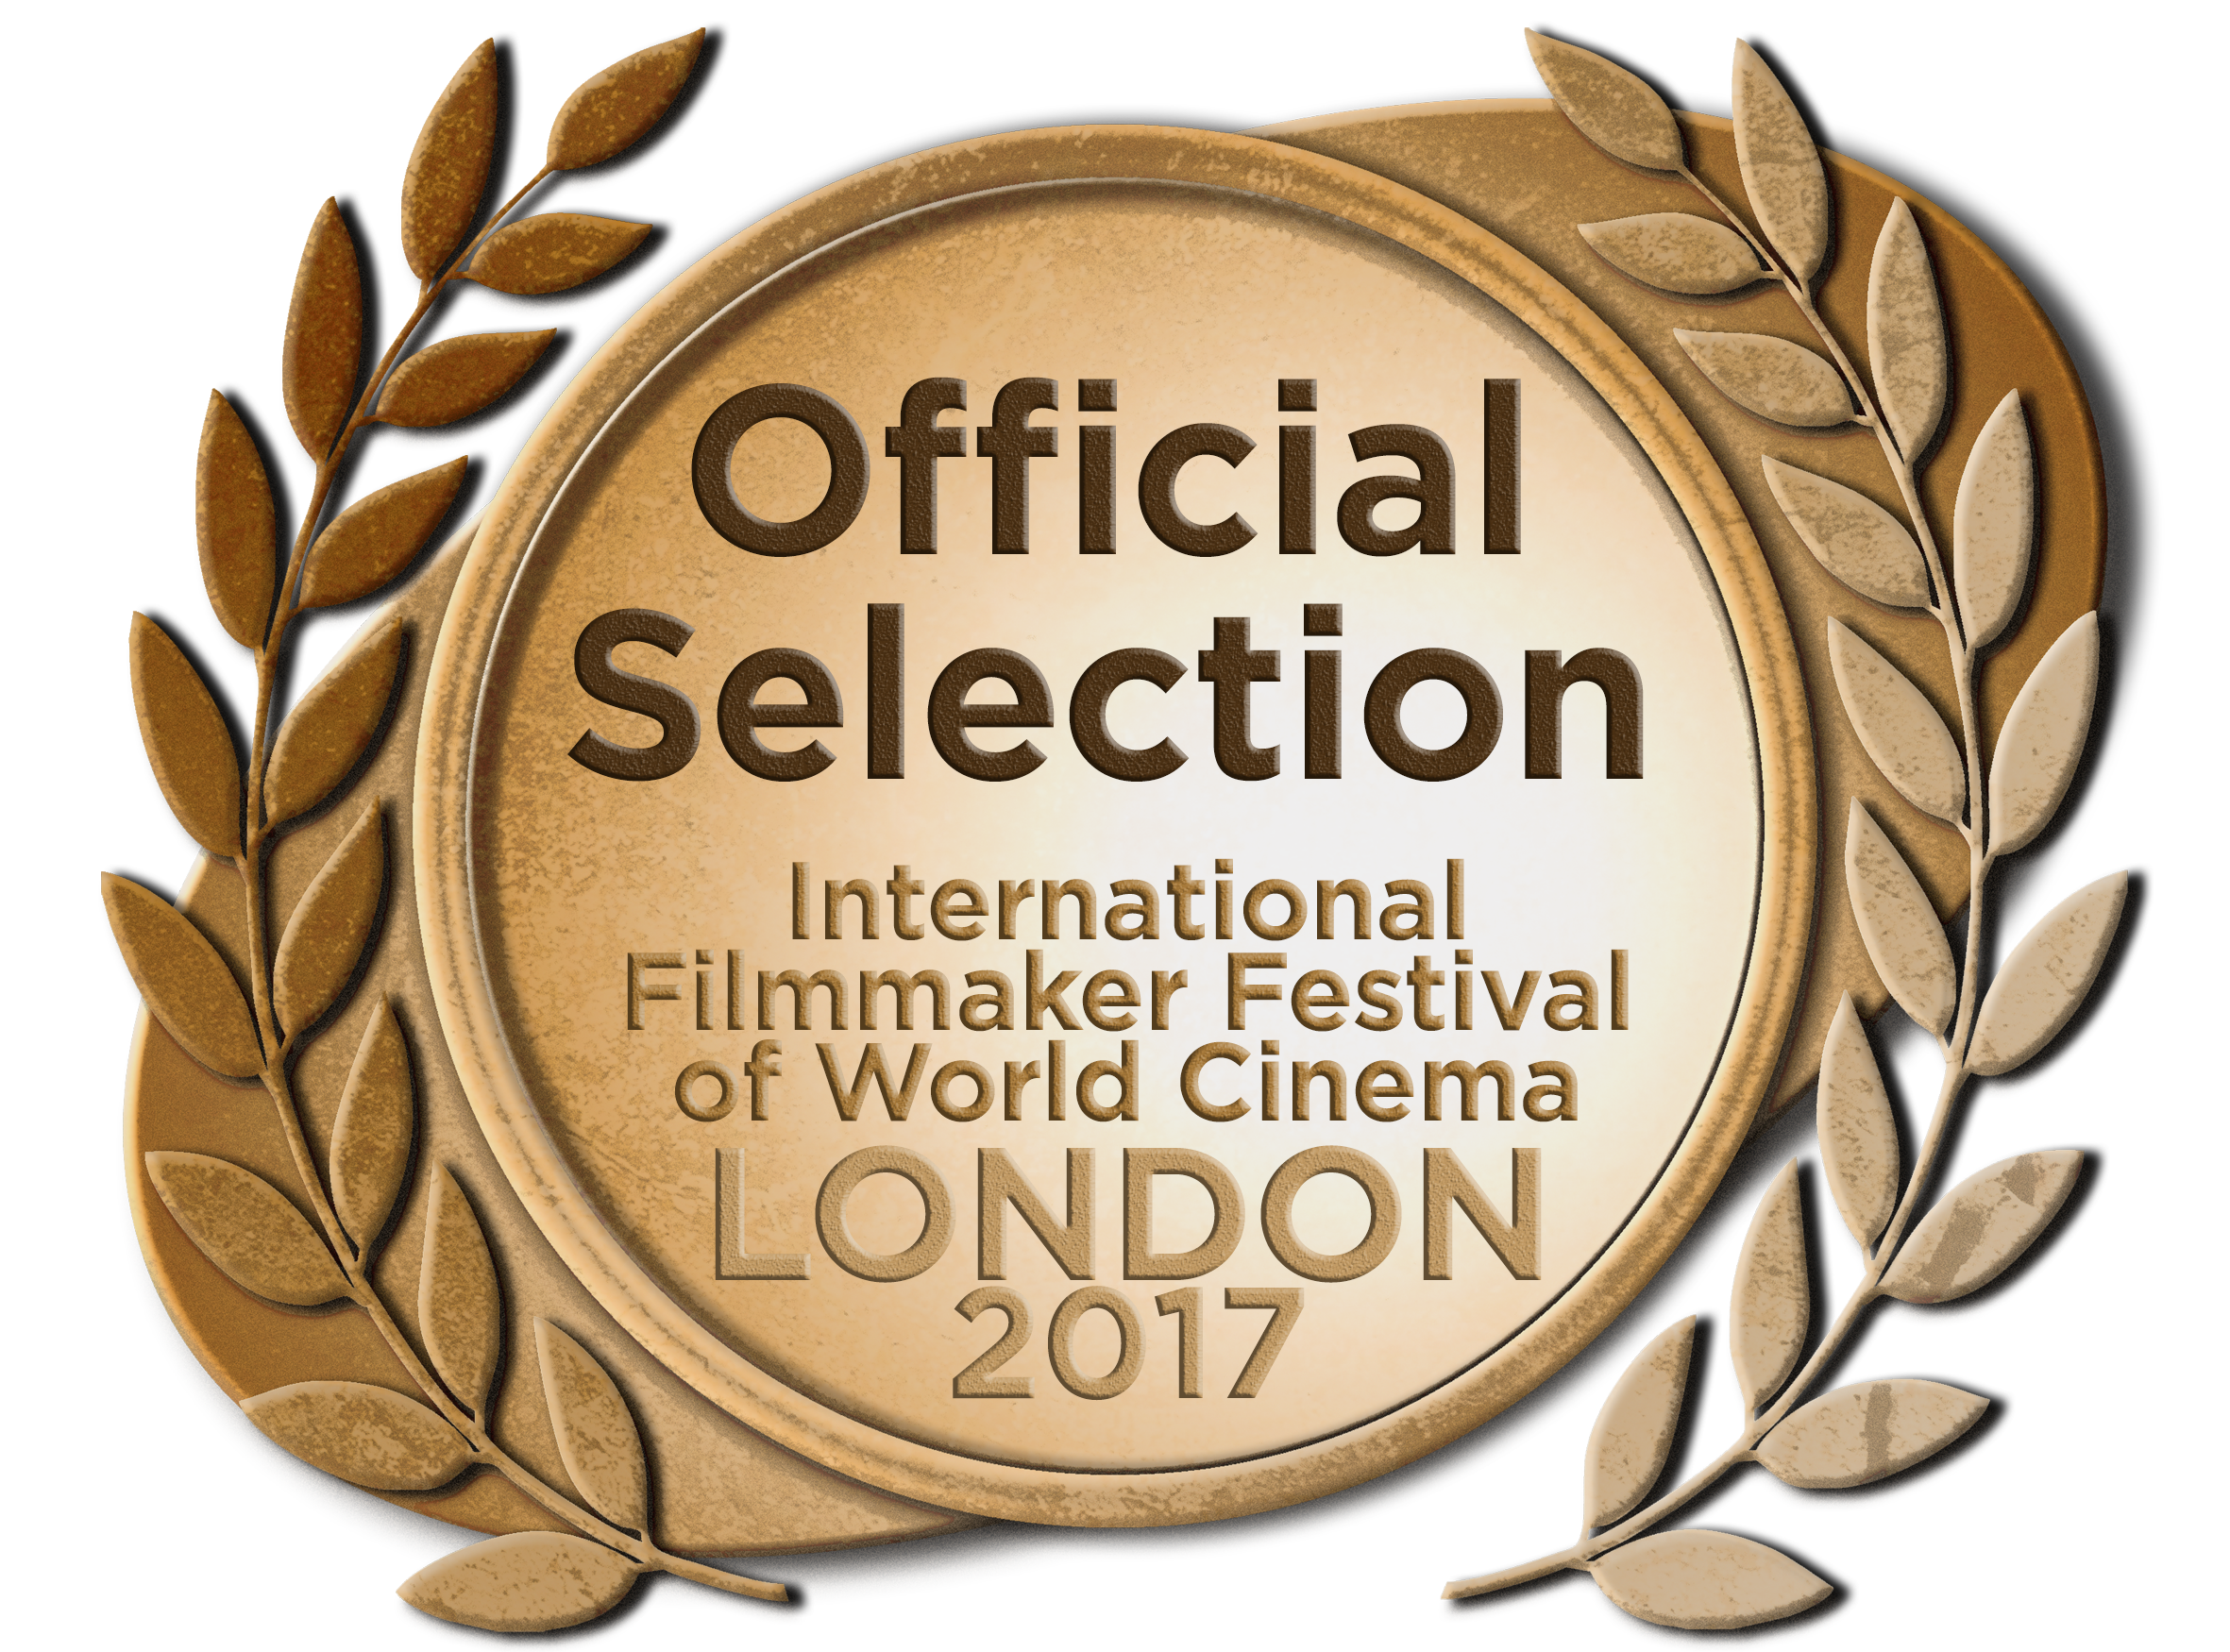 Official-SelectionLONDONIFF2017.png